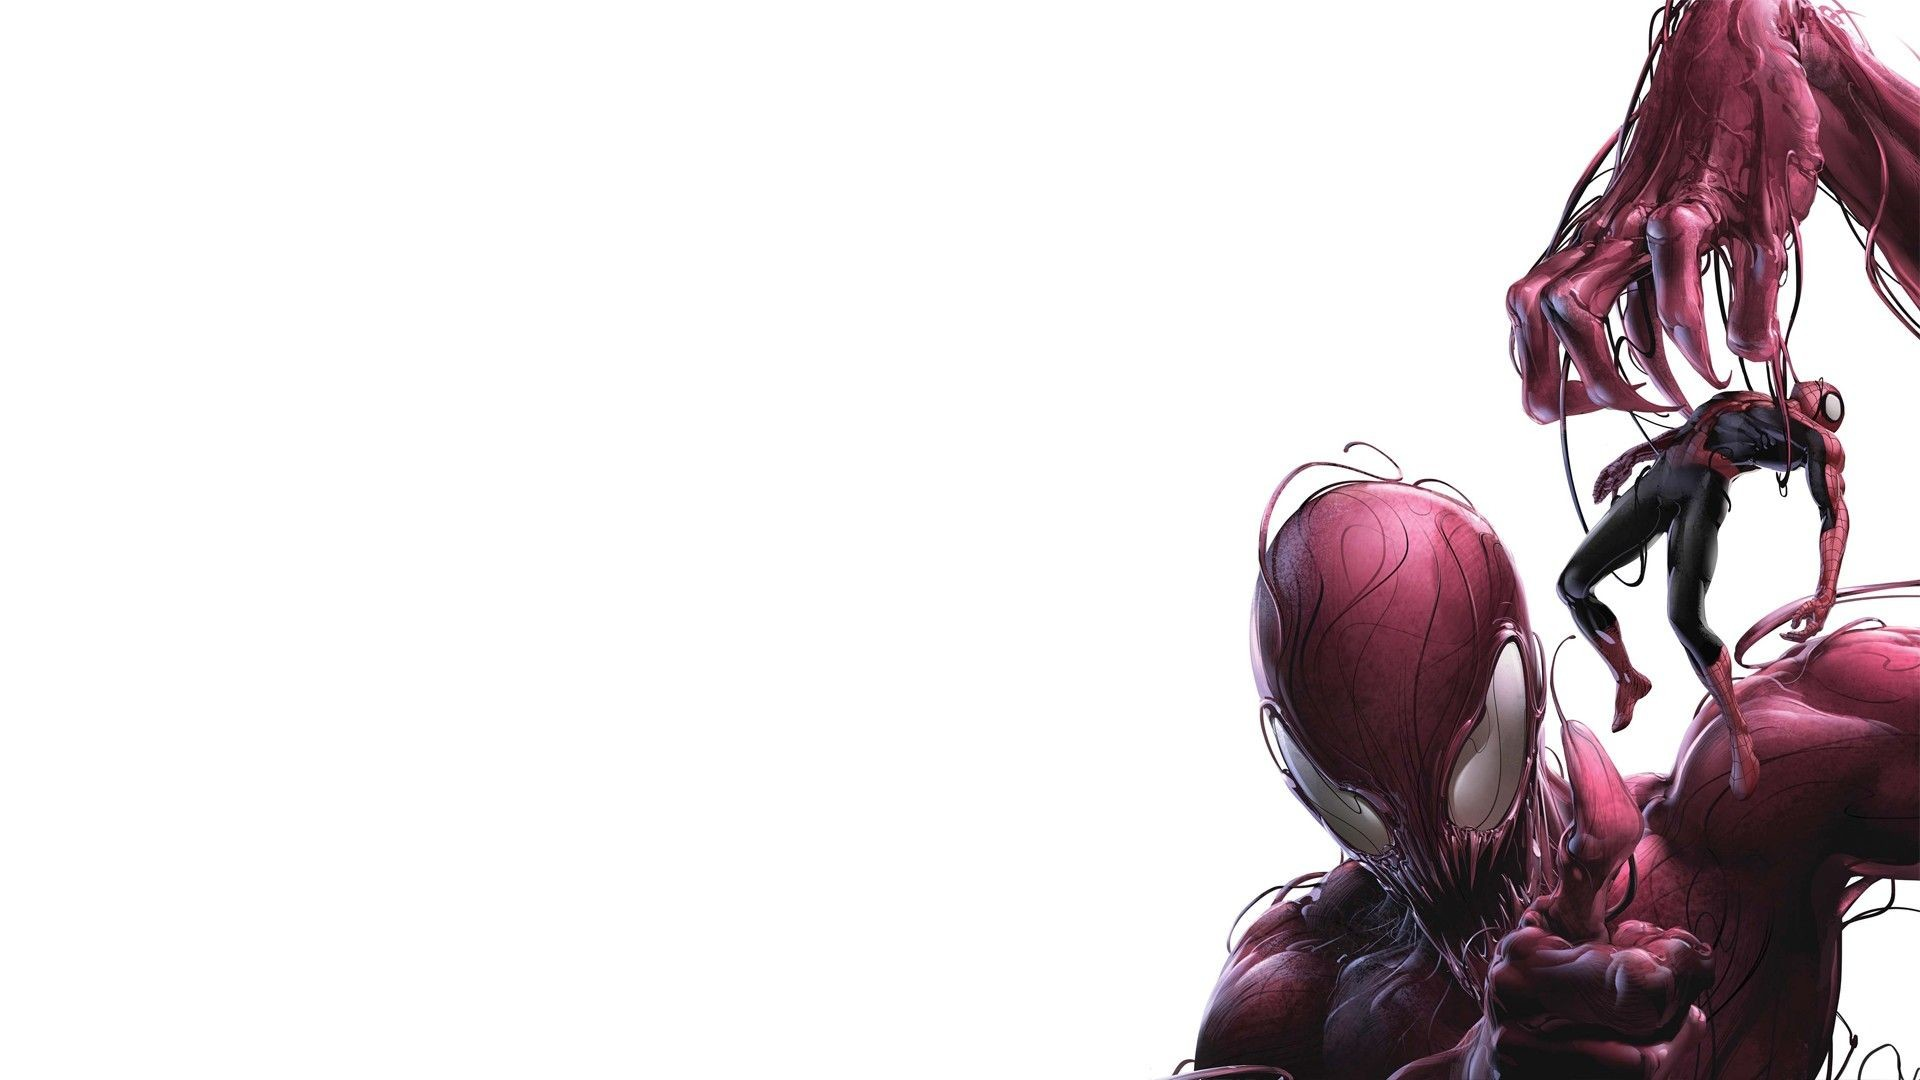 <b>Carnage Wallpapers</b> HD, Desktop Backgrounds, Images and